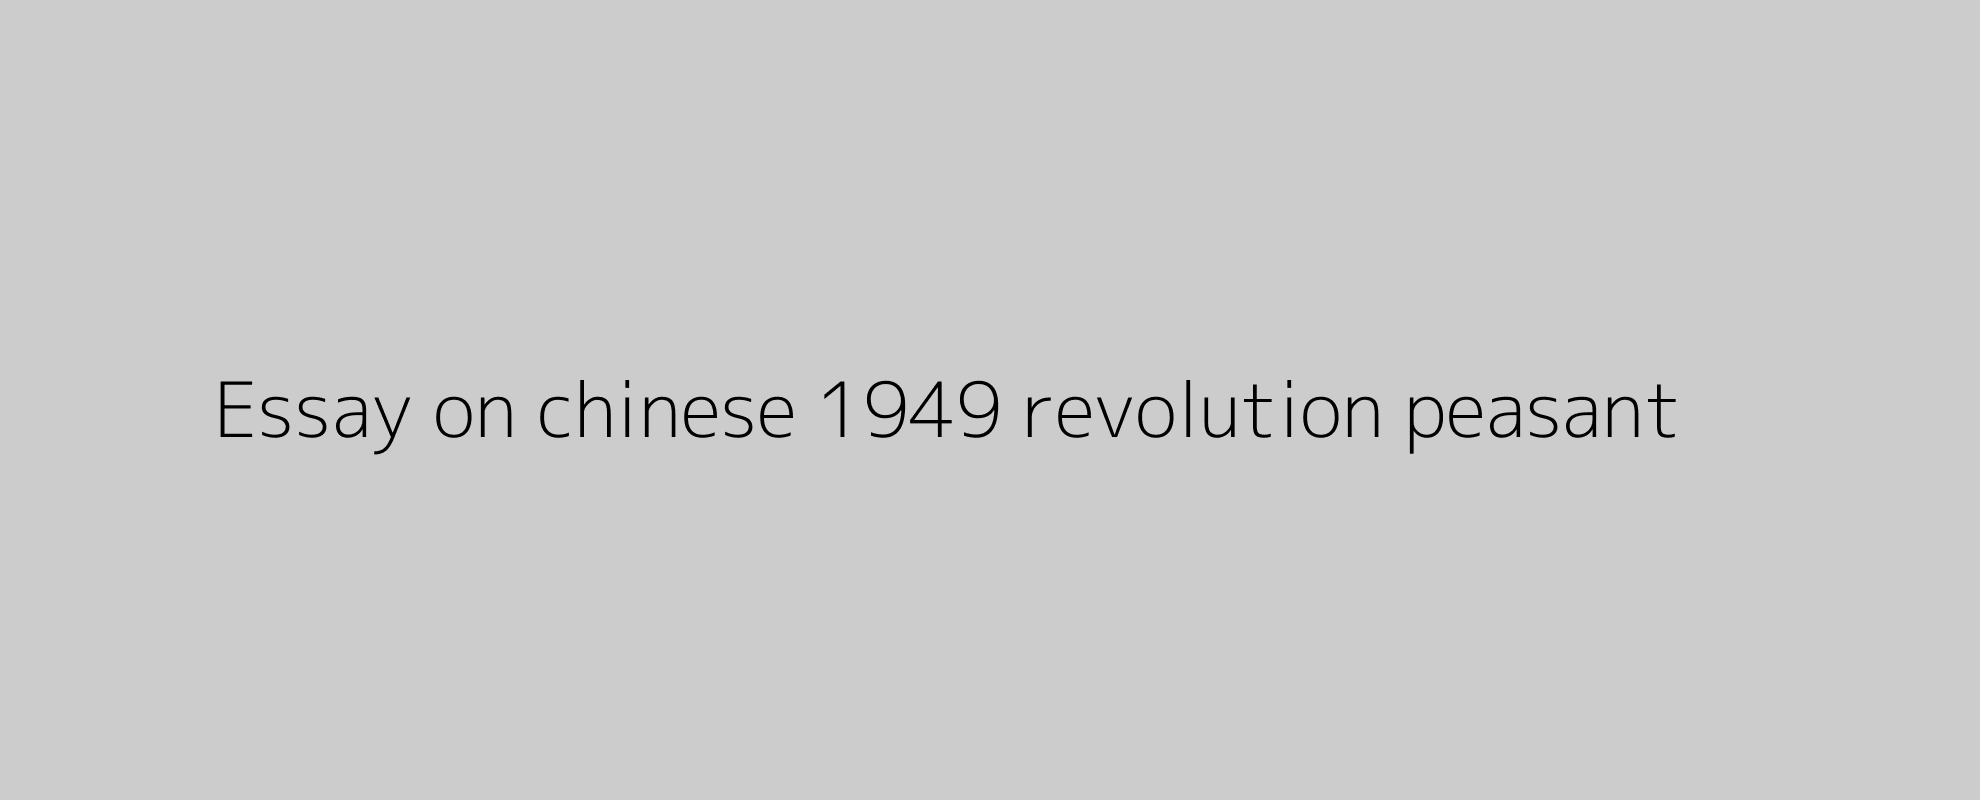 Essay on chinese 1949 revolution peasant